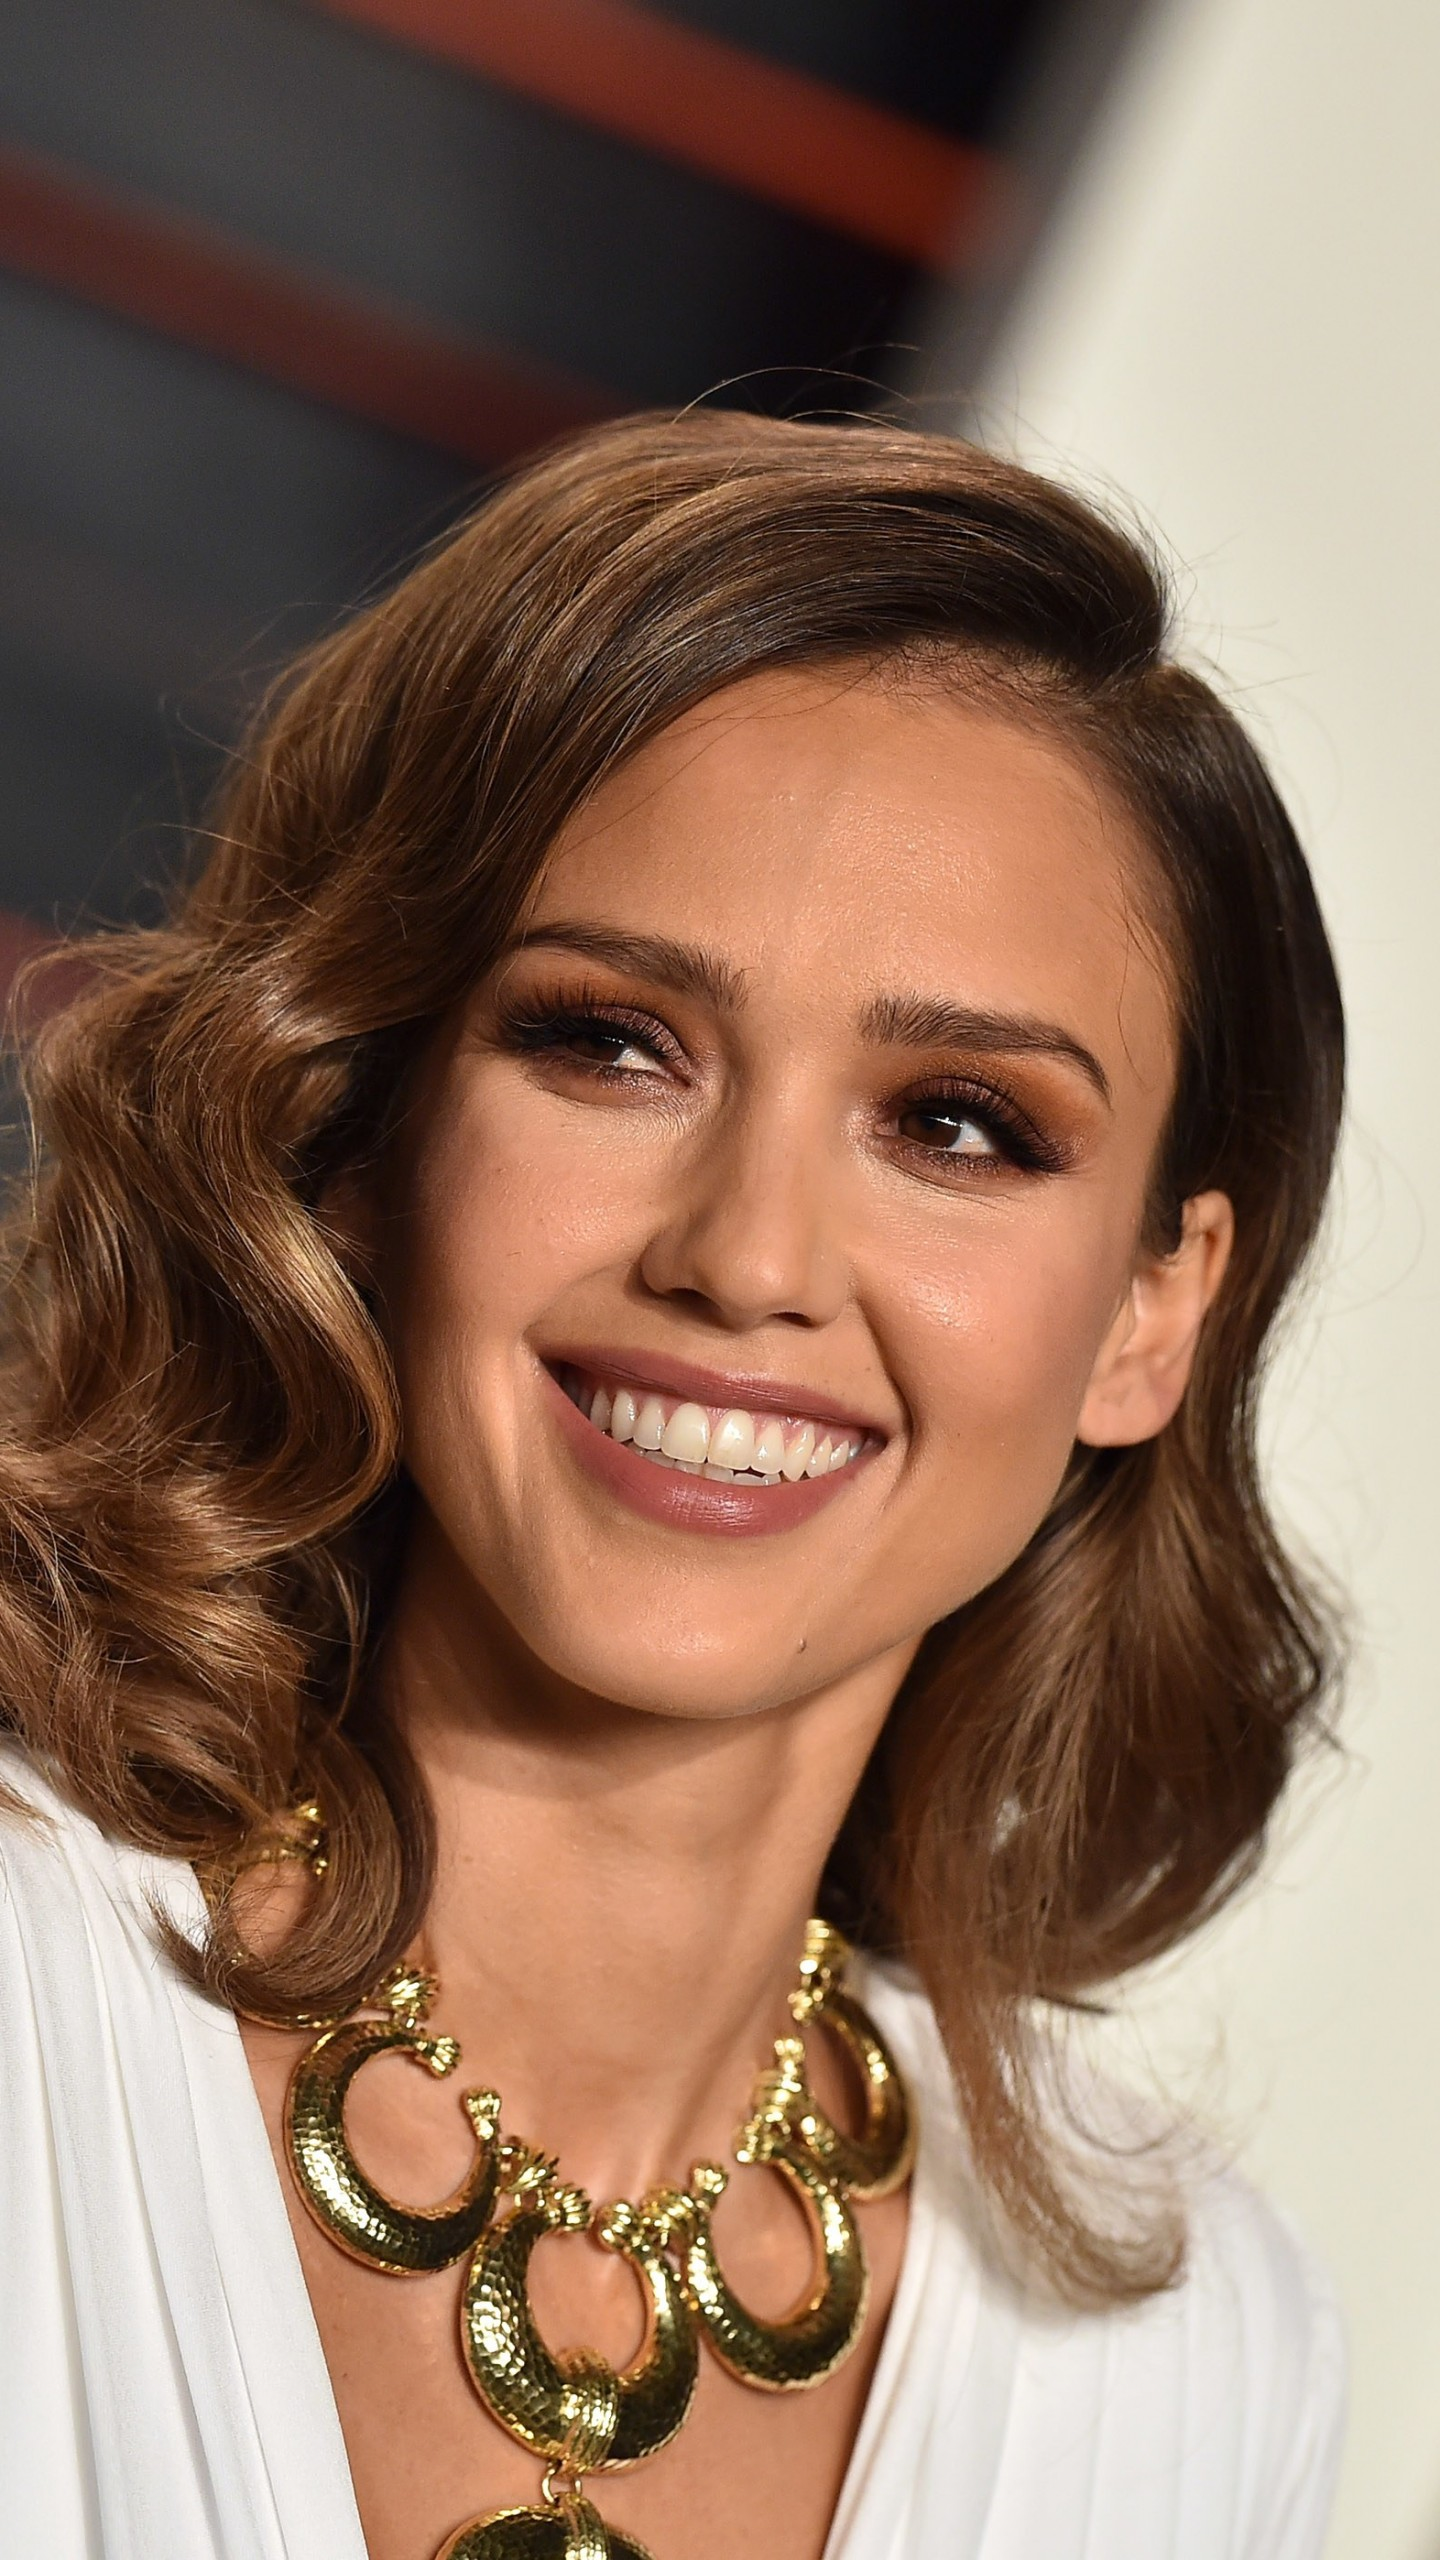 Wallpaper Jessica Alba Most Popular Celebs In 2015